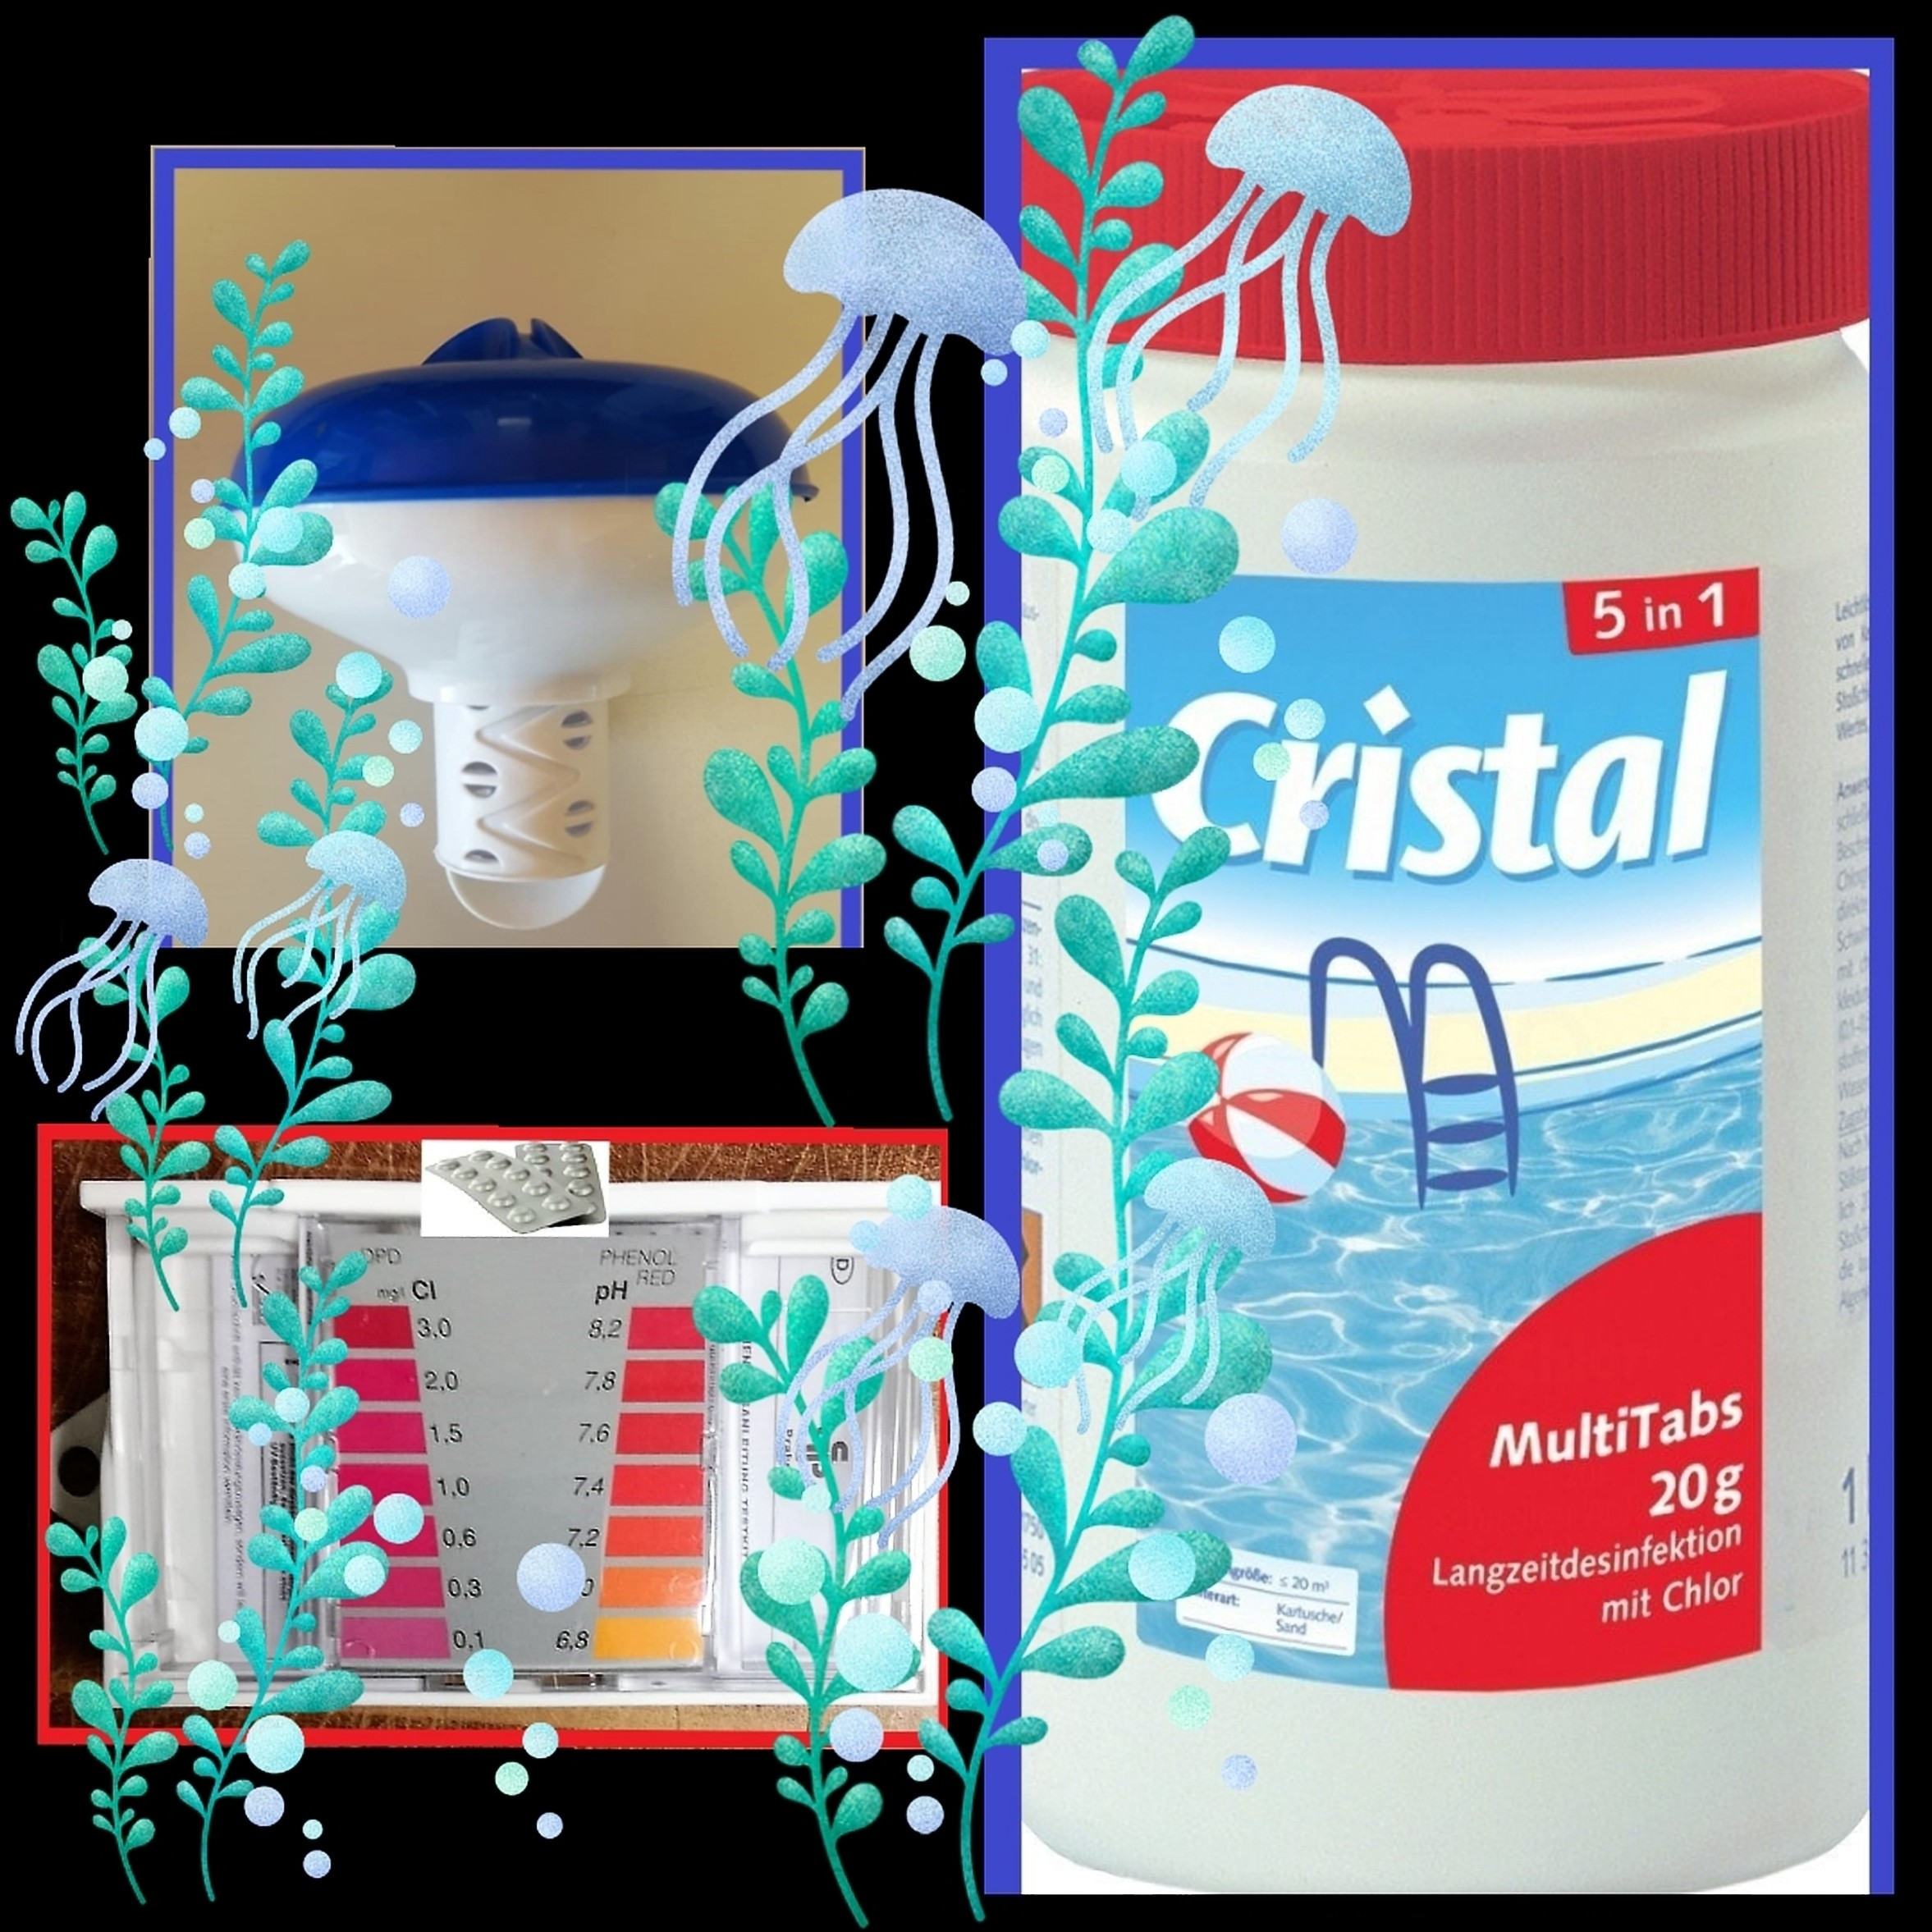 Multitabs Pool Auflösen Cristal Multitabs 20g 5 In 1 5 Kg Eimer 5 In 1 Chlor